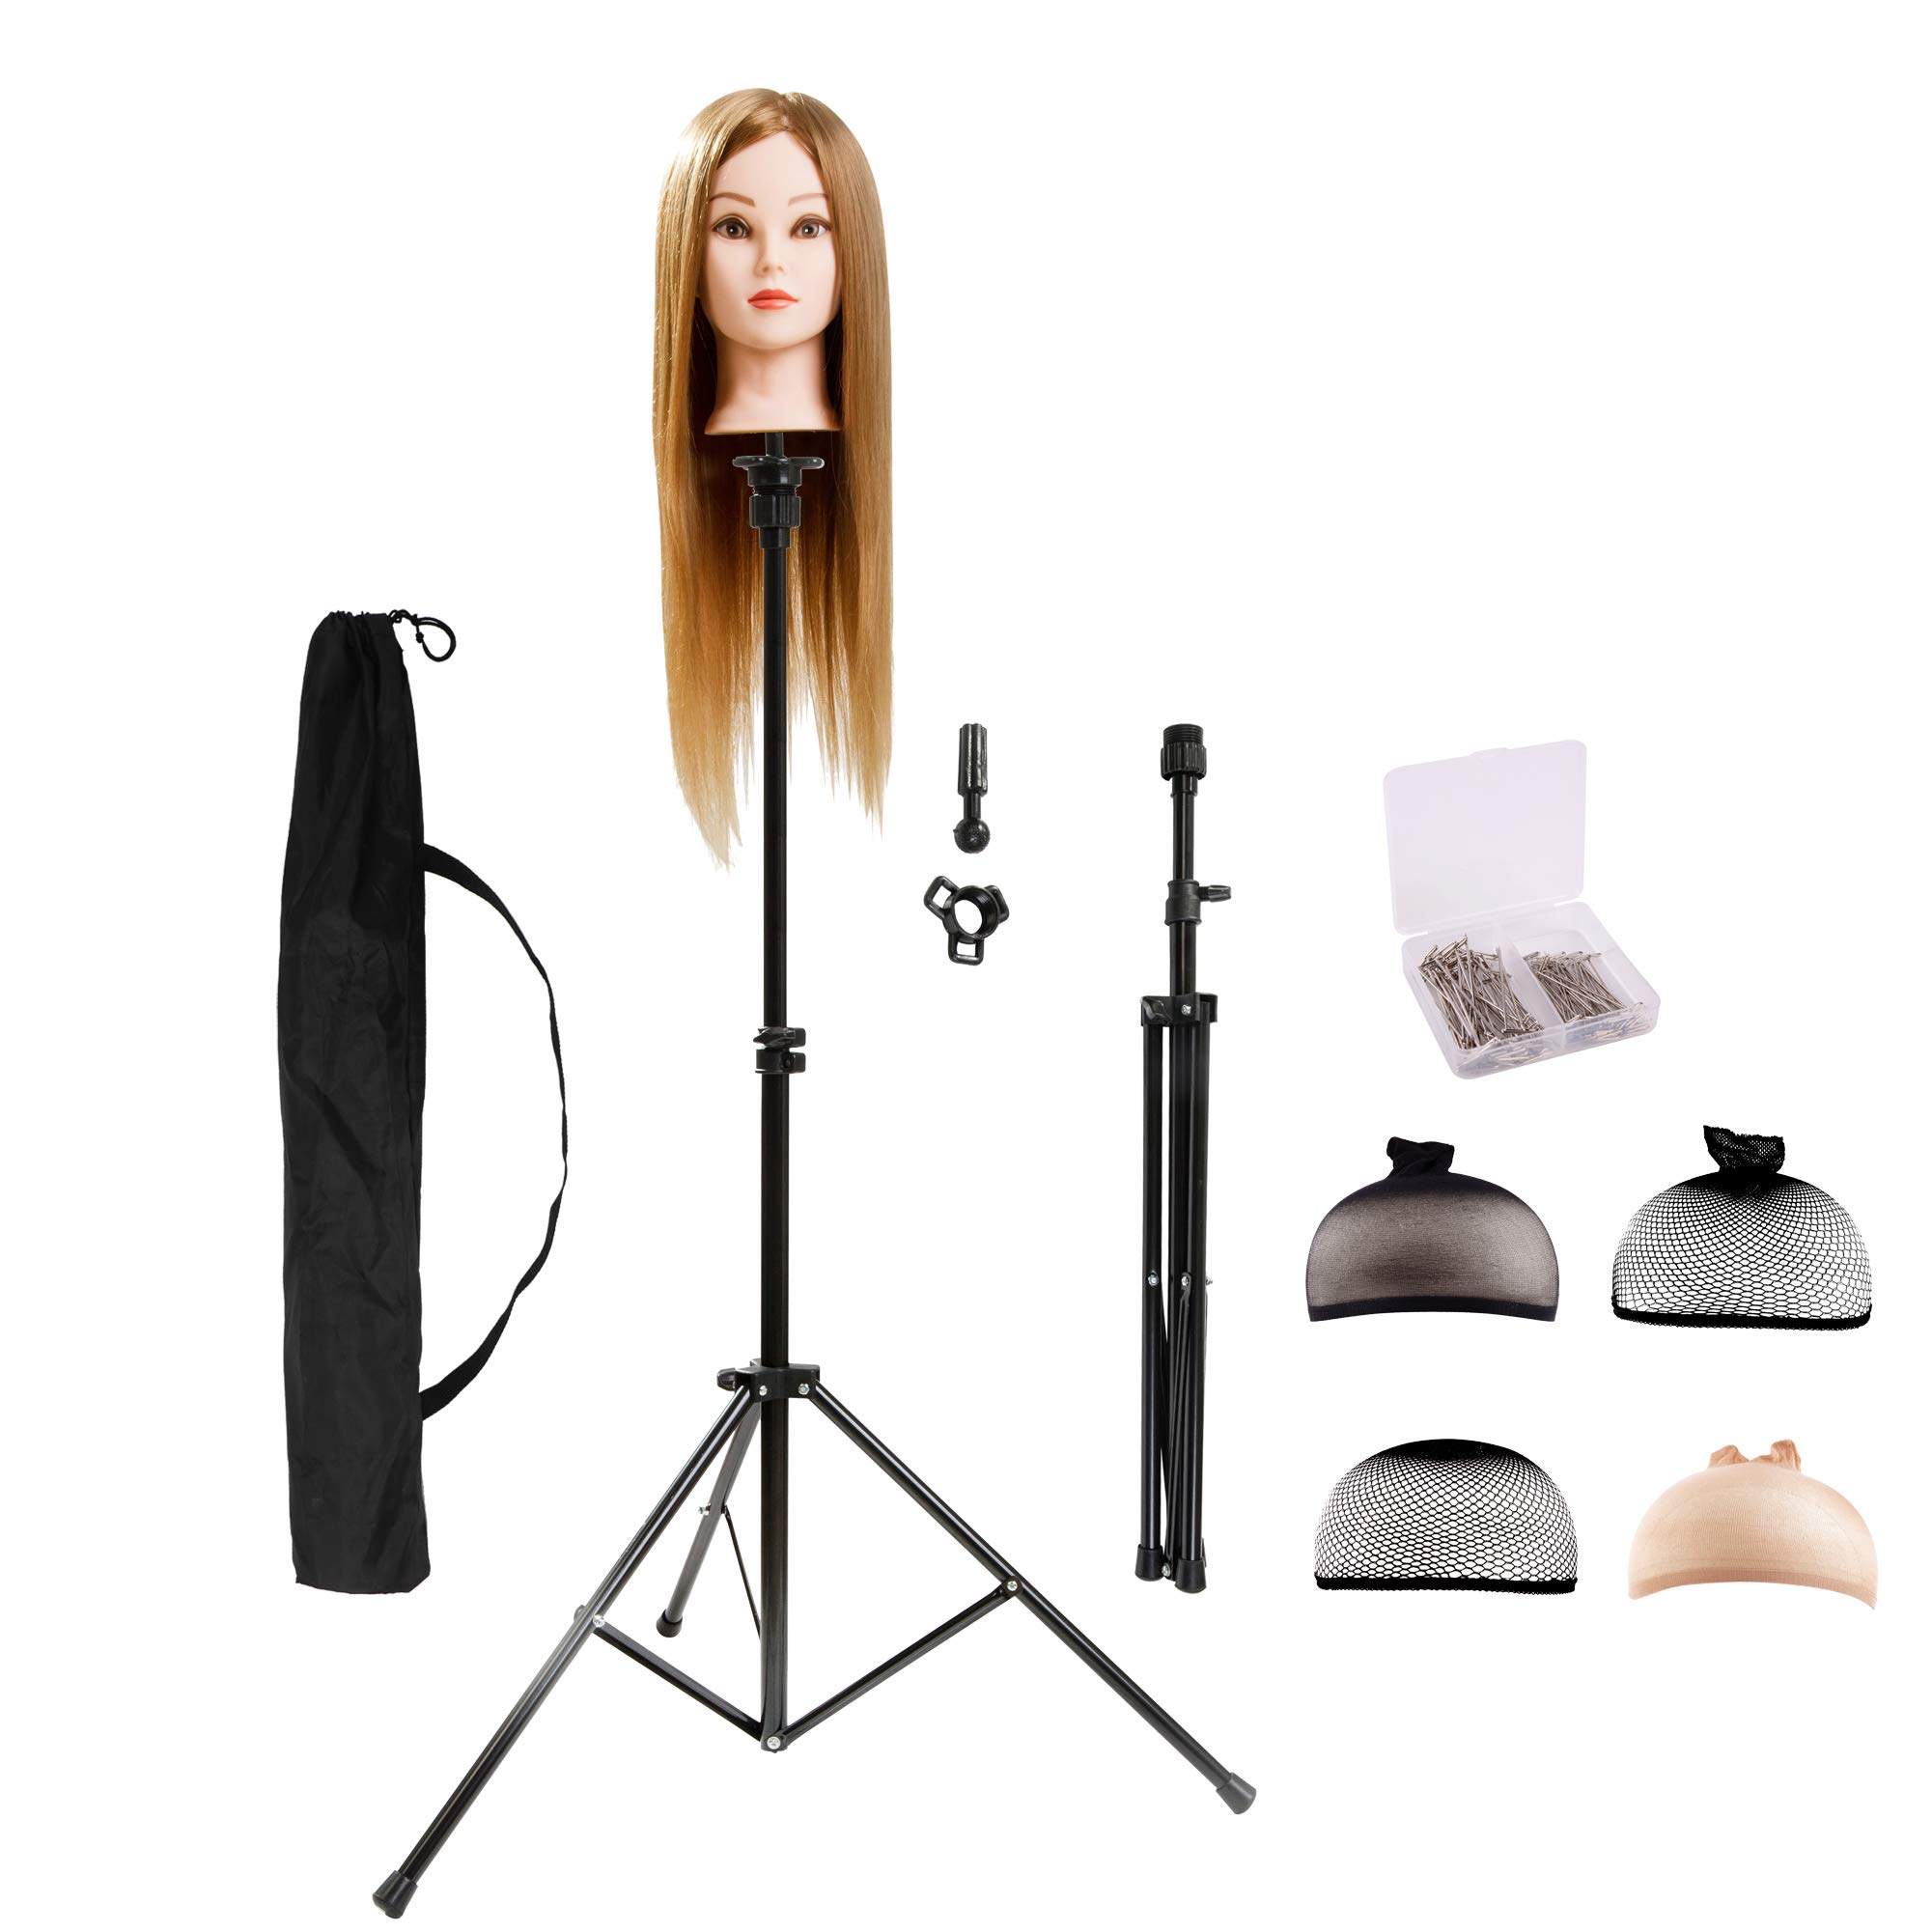 HYOUJIN Wig Stand Metal Adjustable Cosmetology Hairdressing Training Mannequin Head Tripod Stand for Hair Extensions Canvas Block Wig Head by HYOUJIN